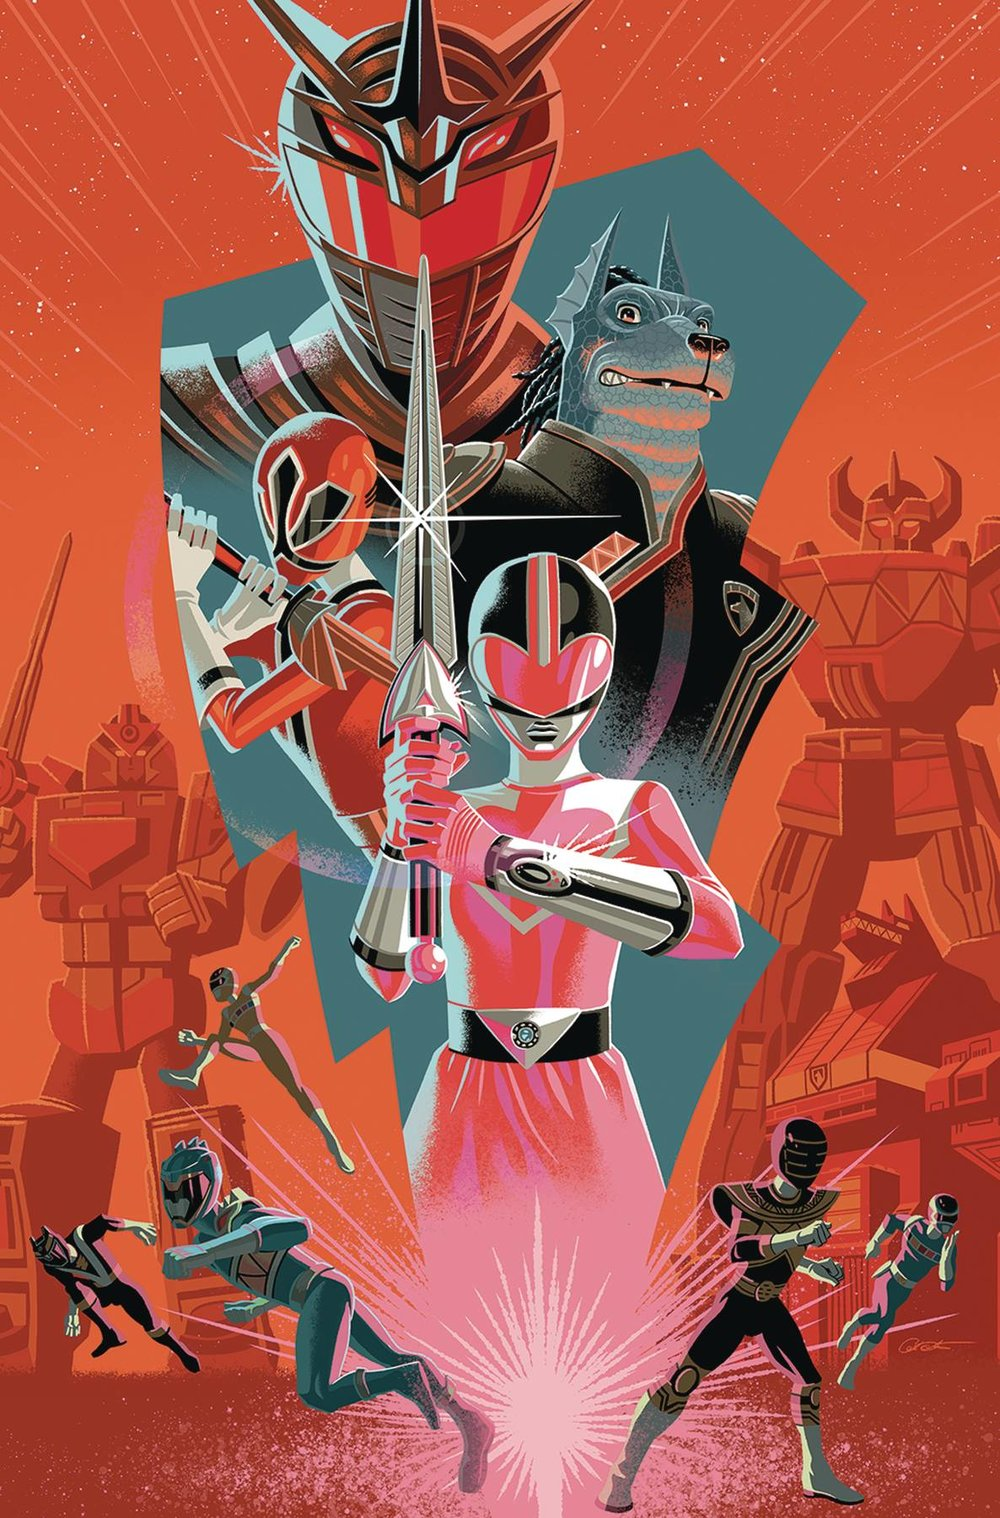 MIGHTY MORPHIN POWER RANGERS 2018 ANNUAL 1 10 COPY INCV.jpg